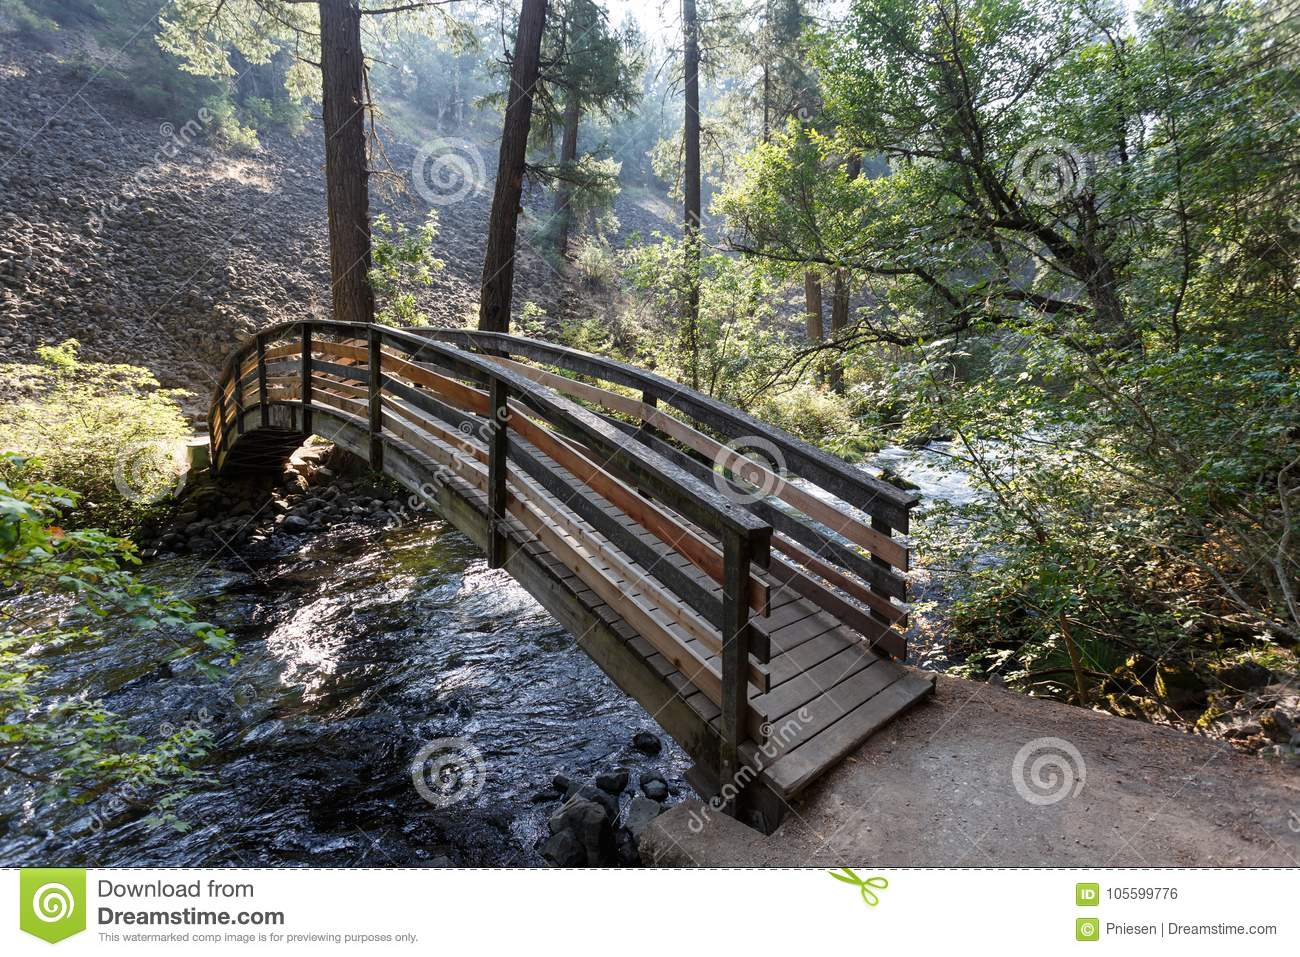 Bridge across water that flows into McArthur-Burney Falls in Lassen Volcanic National Park`s alpine forest